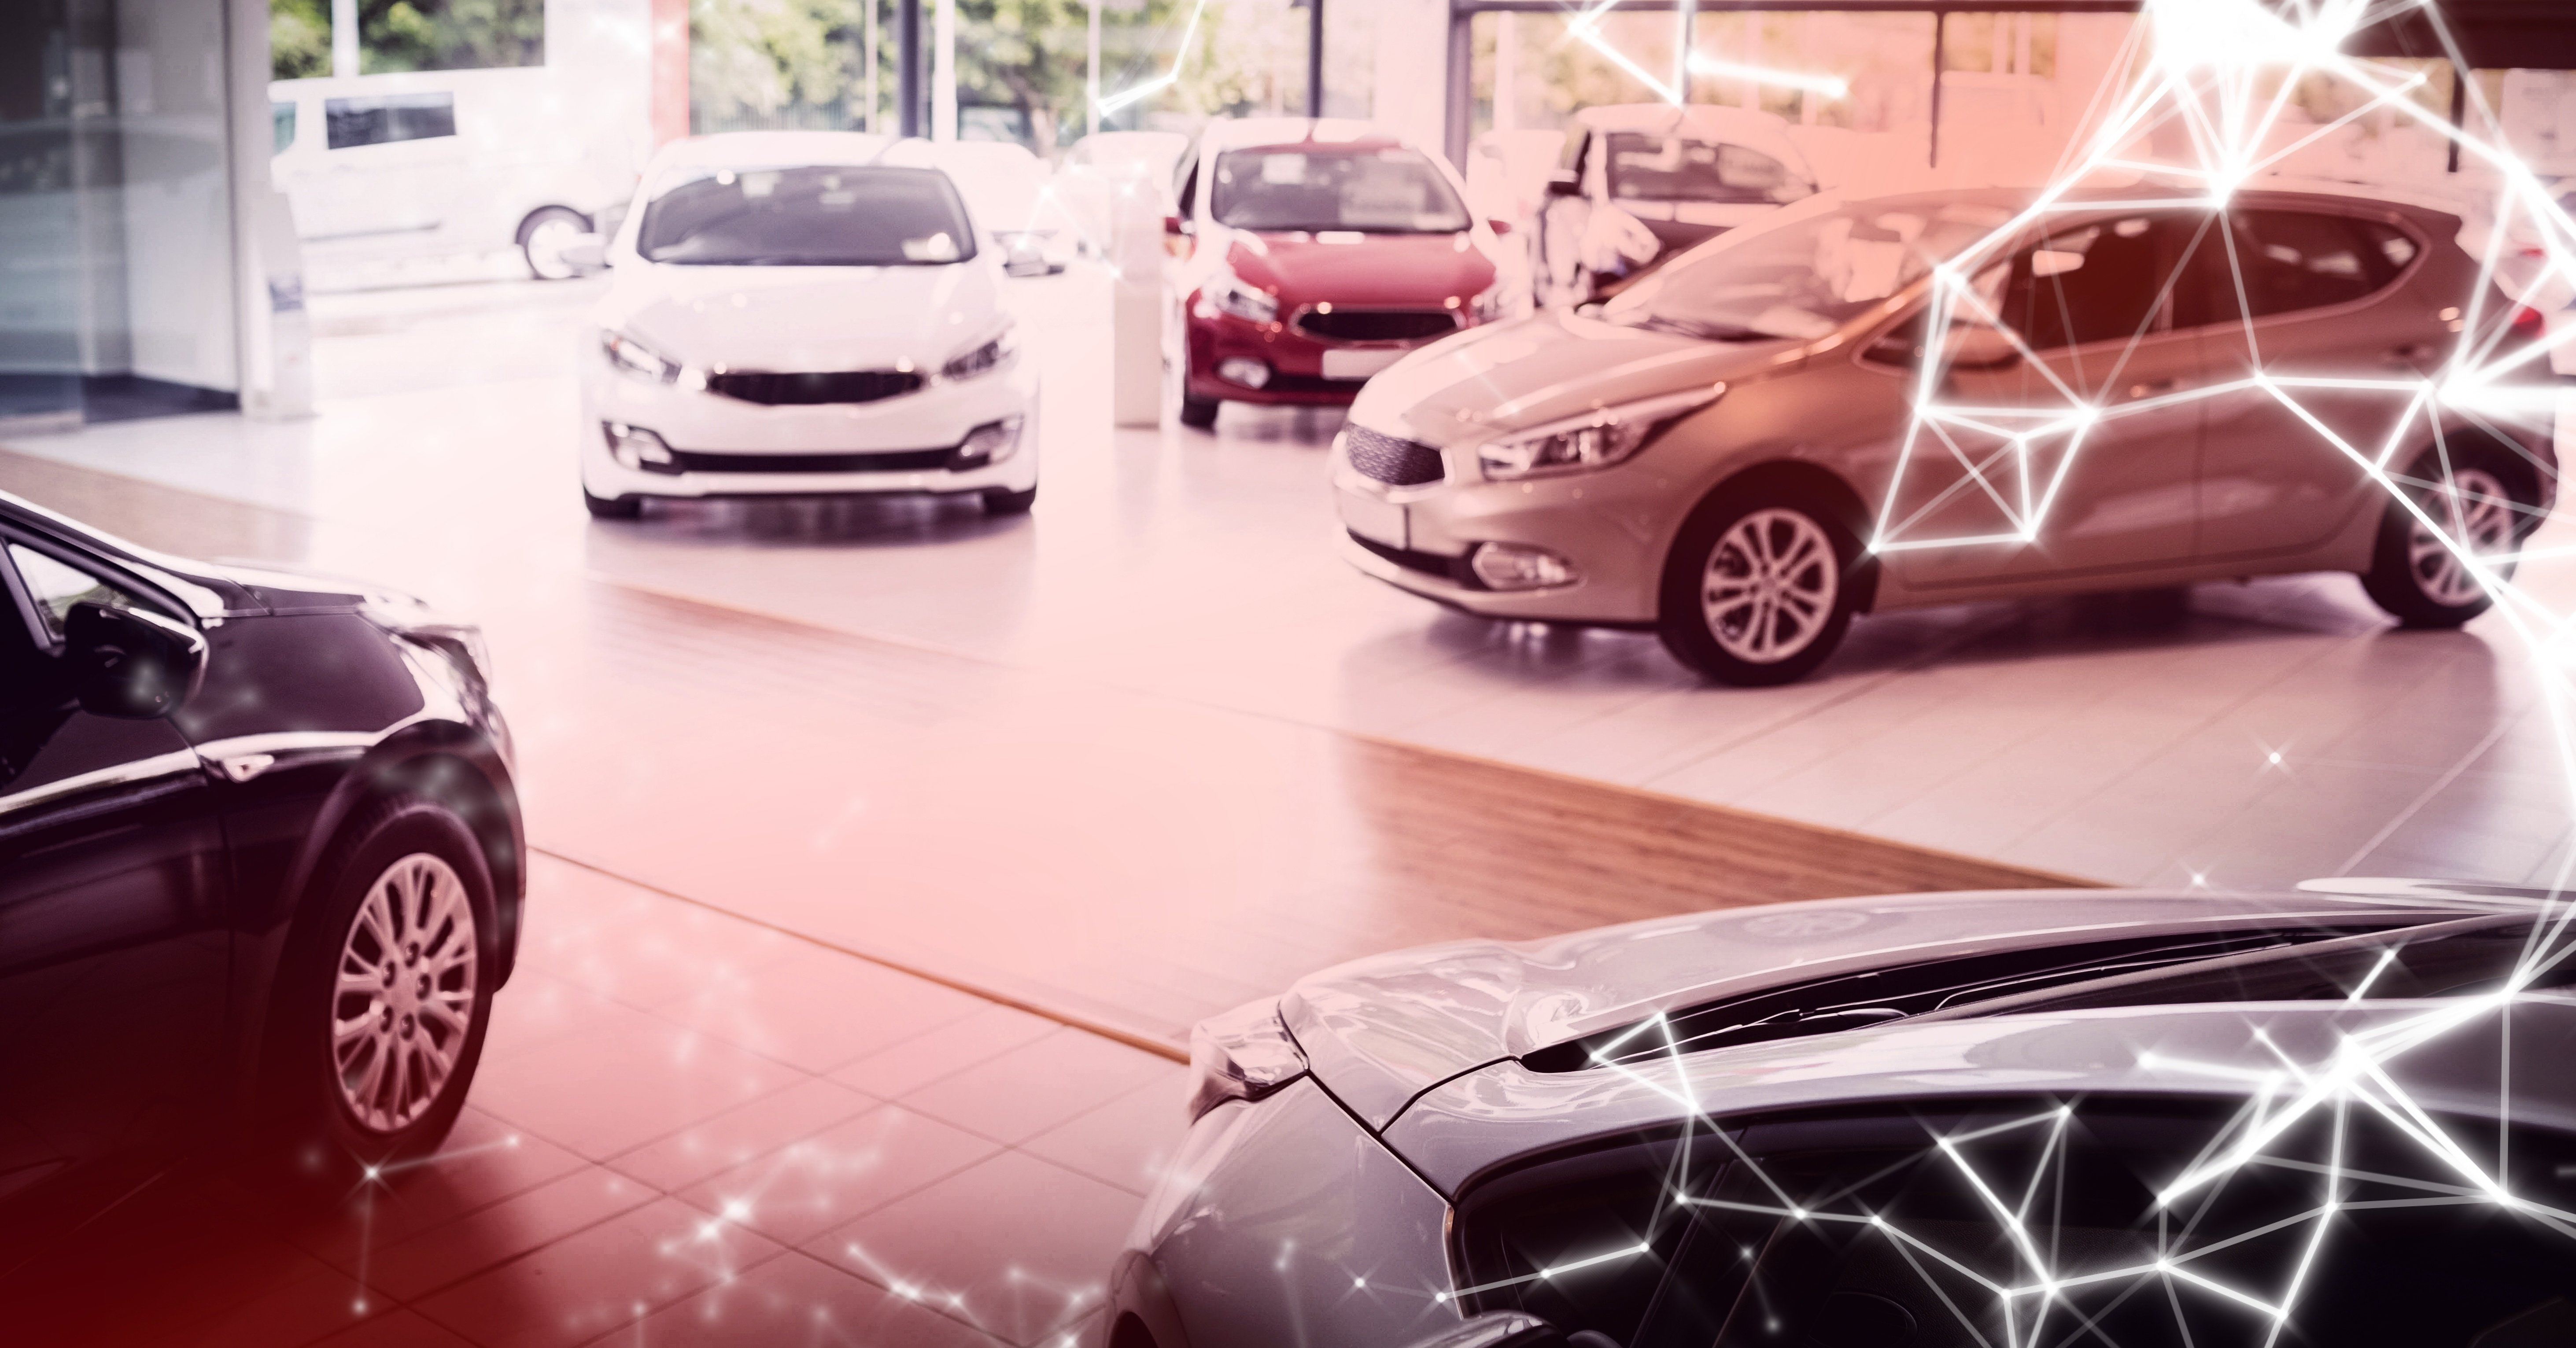 Big names like IBM, Ford, BMW and Renault collaborate to bring distributed ledger tech to the automotive sector